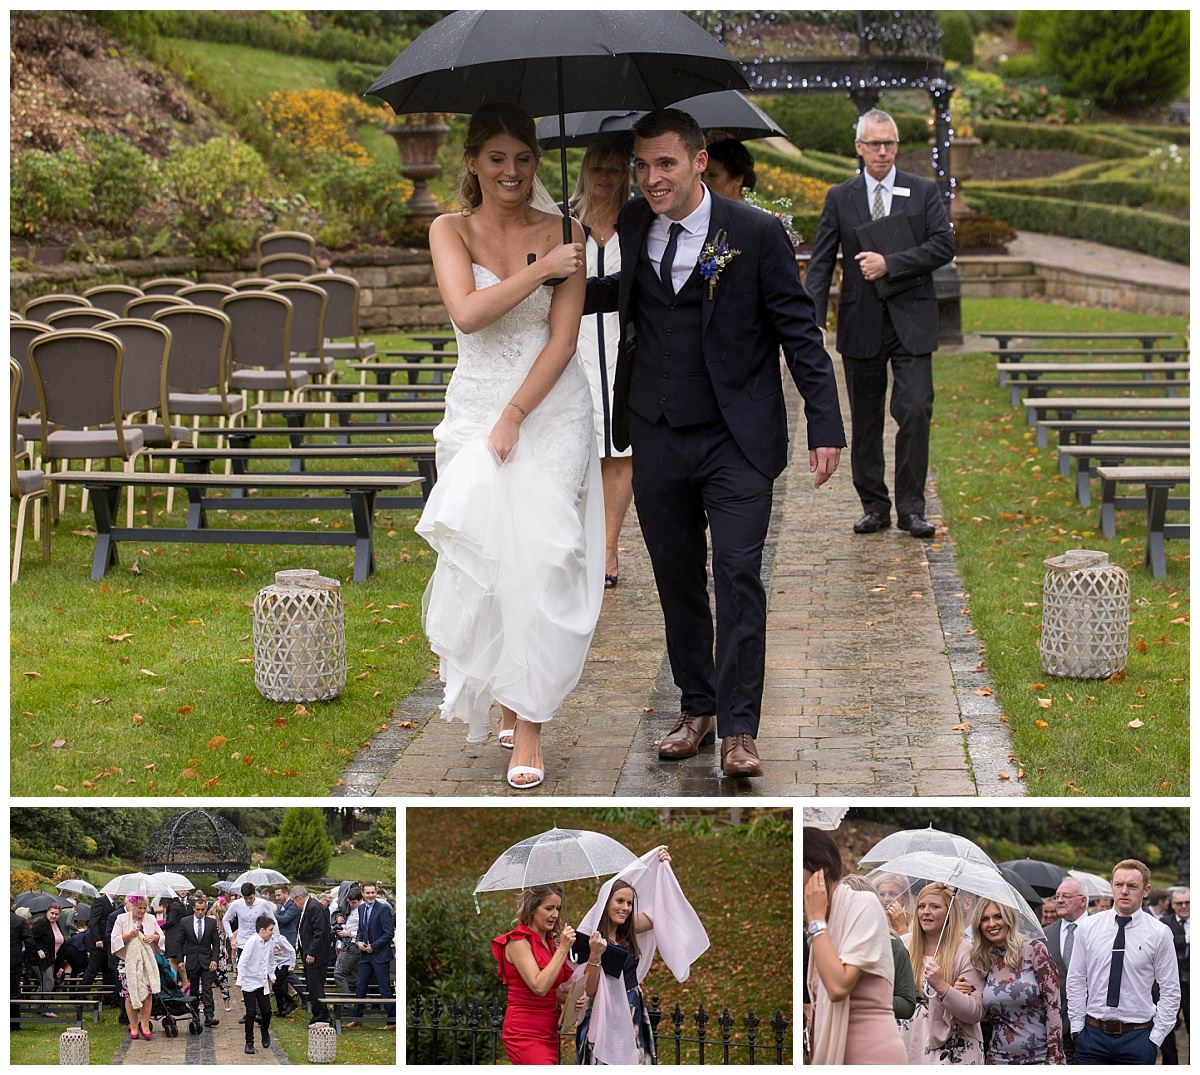 bride and groom walking down the aisle at the Raithwaite Estate